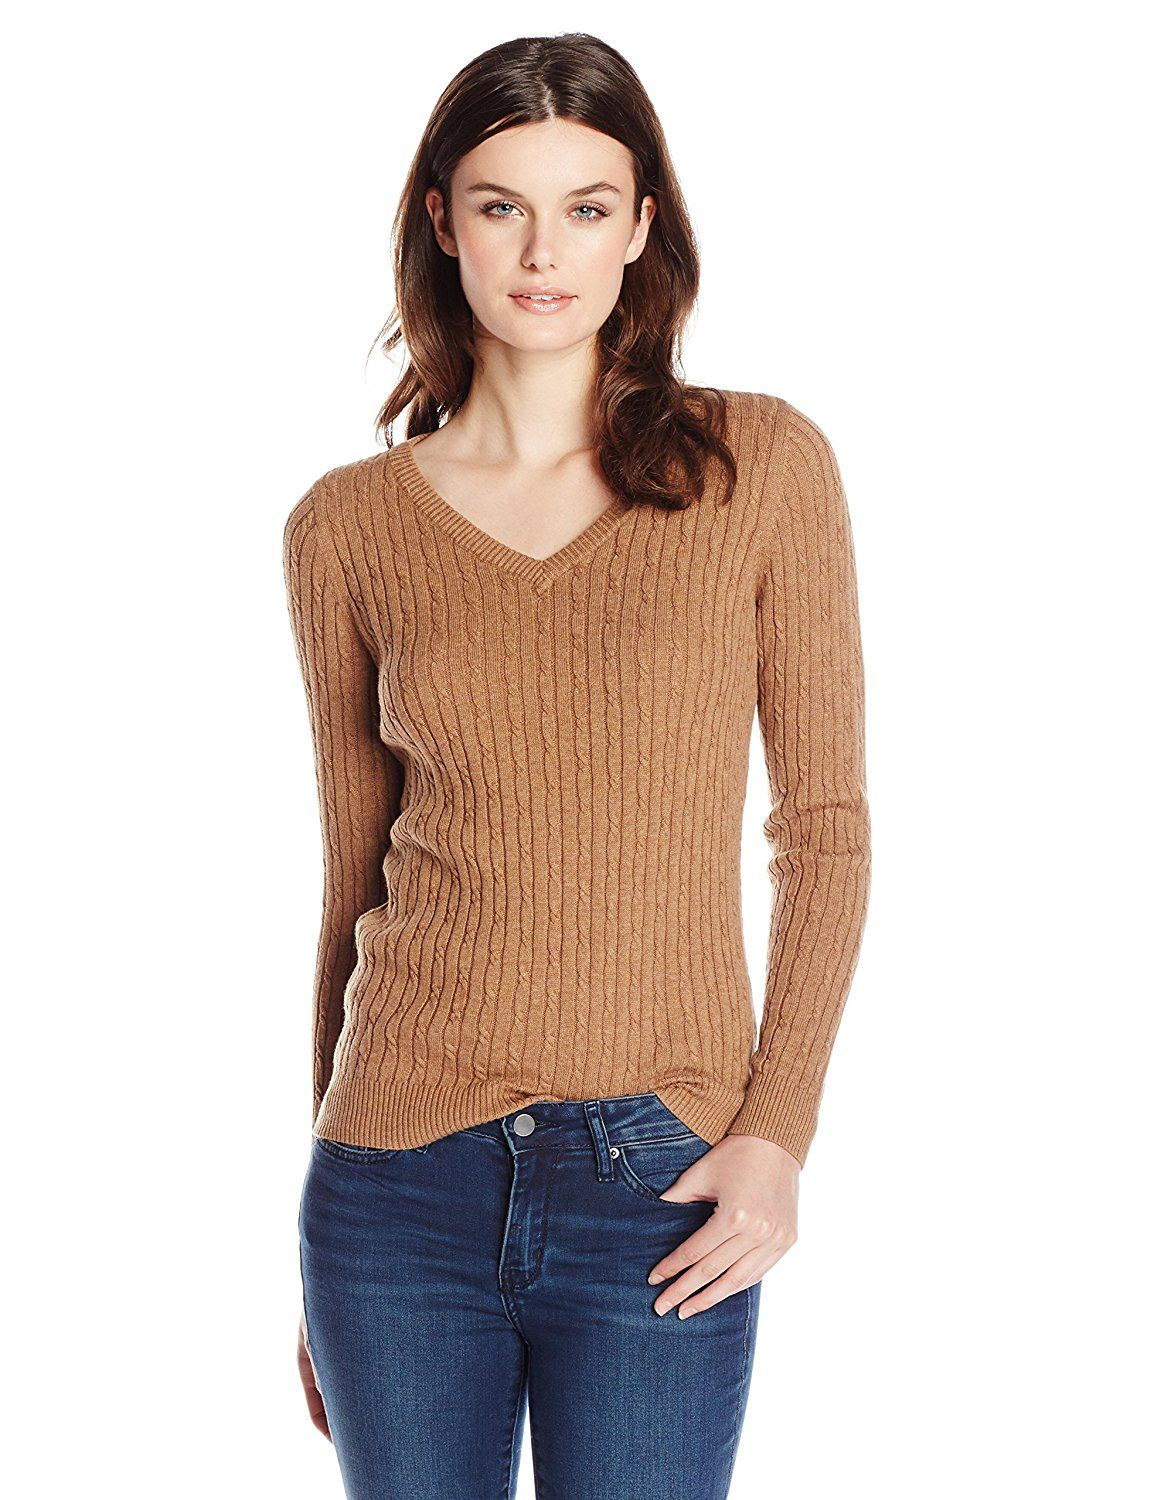 Women's Basic Round or V-Neck Twisted Cable Knit Pullover Sweater ...